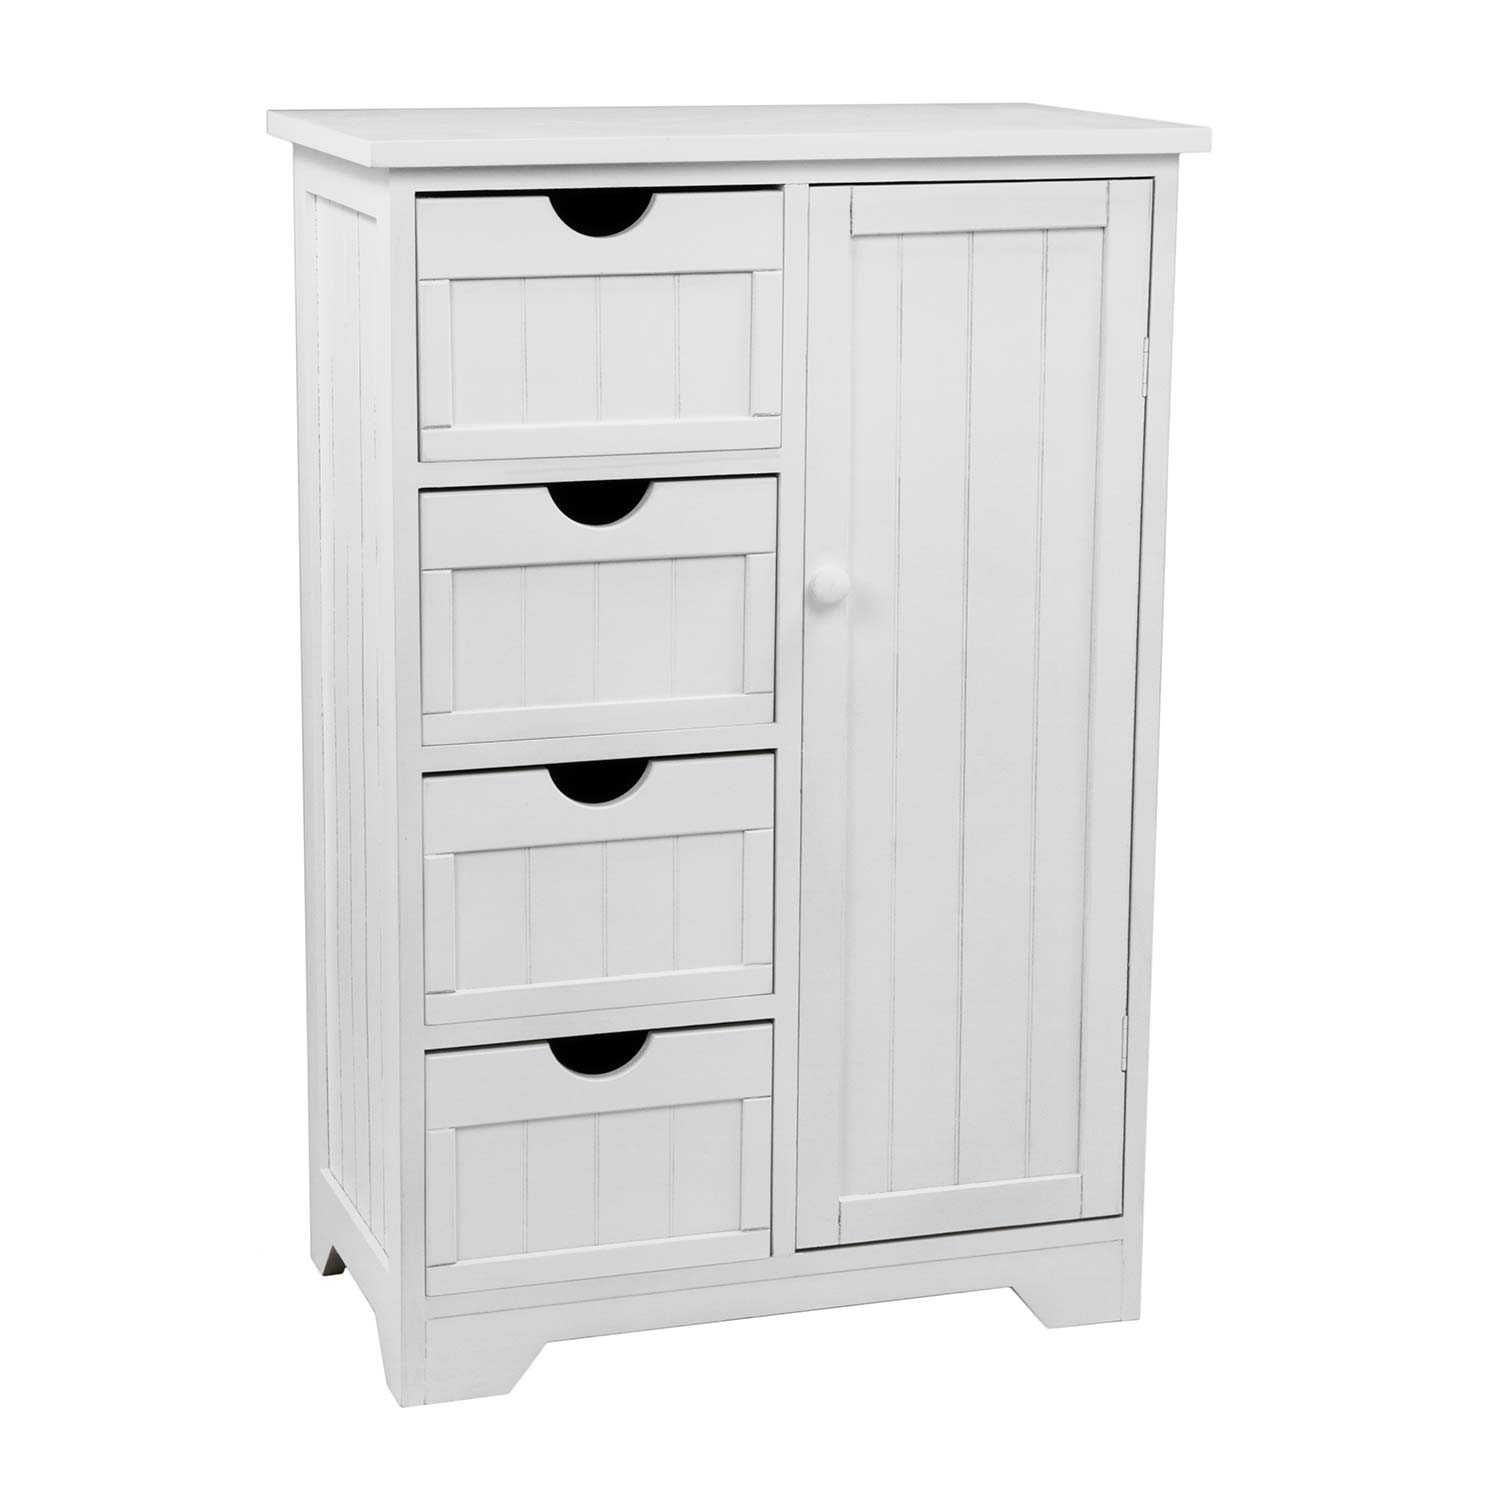 New Tampa 4 Drawer Cupboard Unit